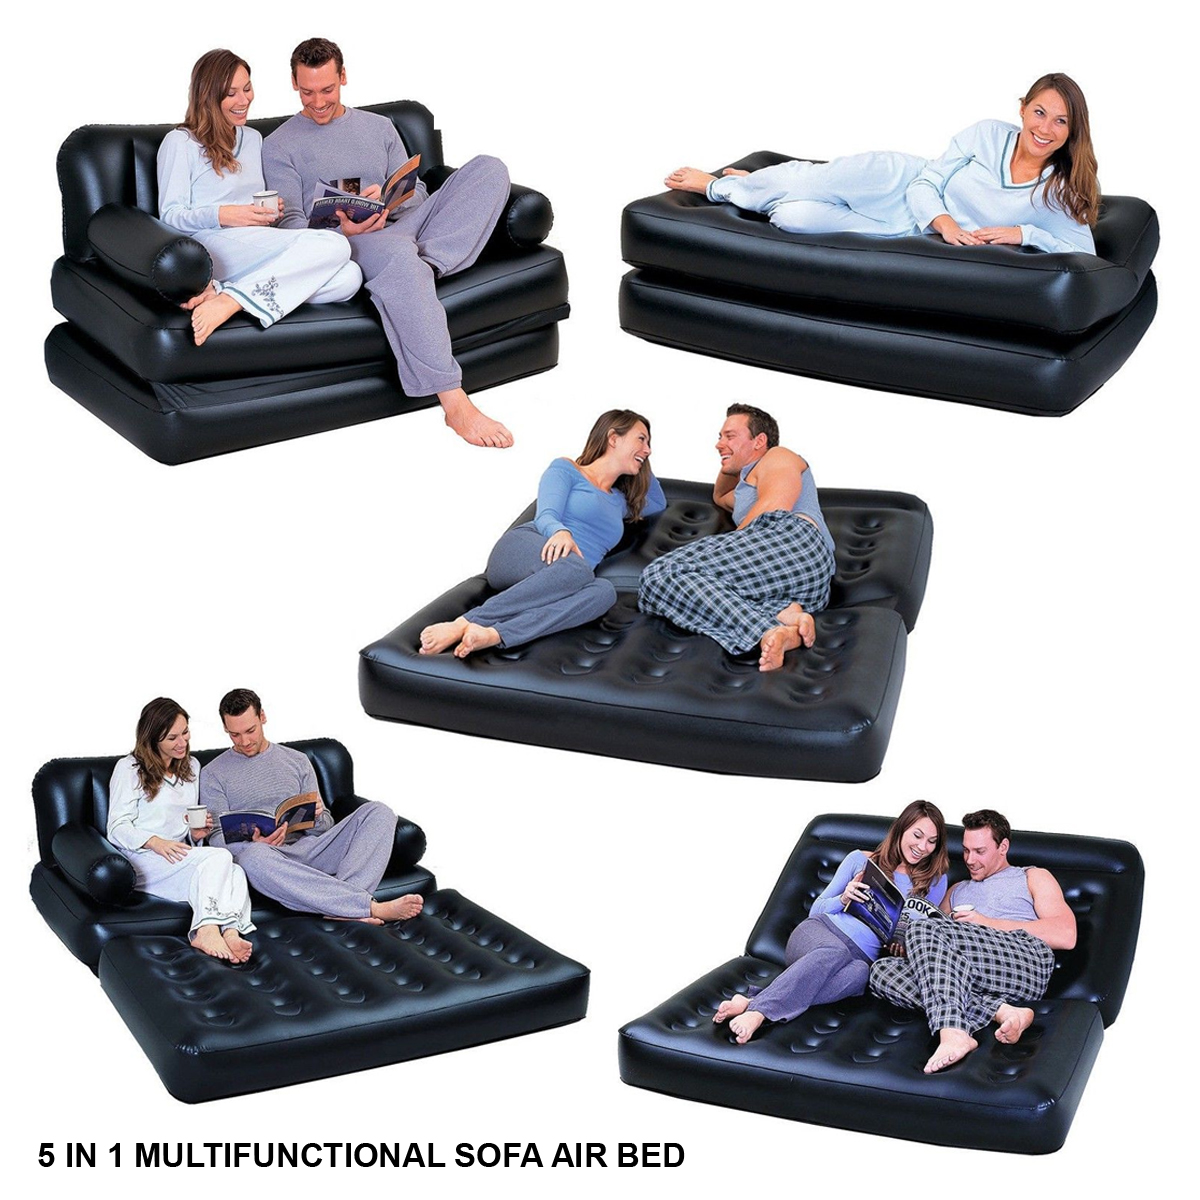 sofa bed bestway 5 in 1 country style table multi function in1 inflatable double air lounger